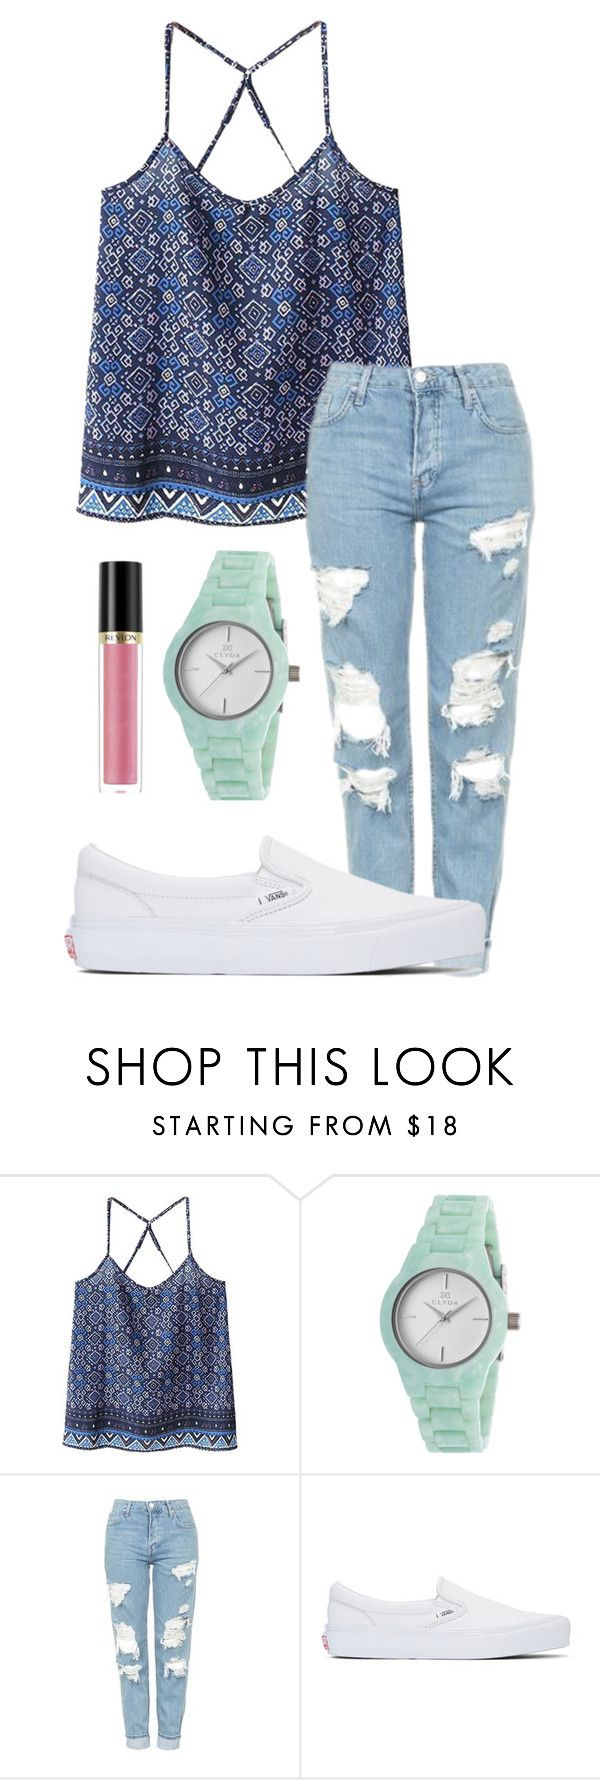 """Spring."" by annayalee-gerber ❤ liked on Polyvore featuring WithChic, Clyda, Topshop, Vans and Revlon"